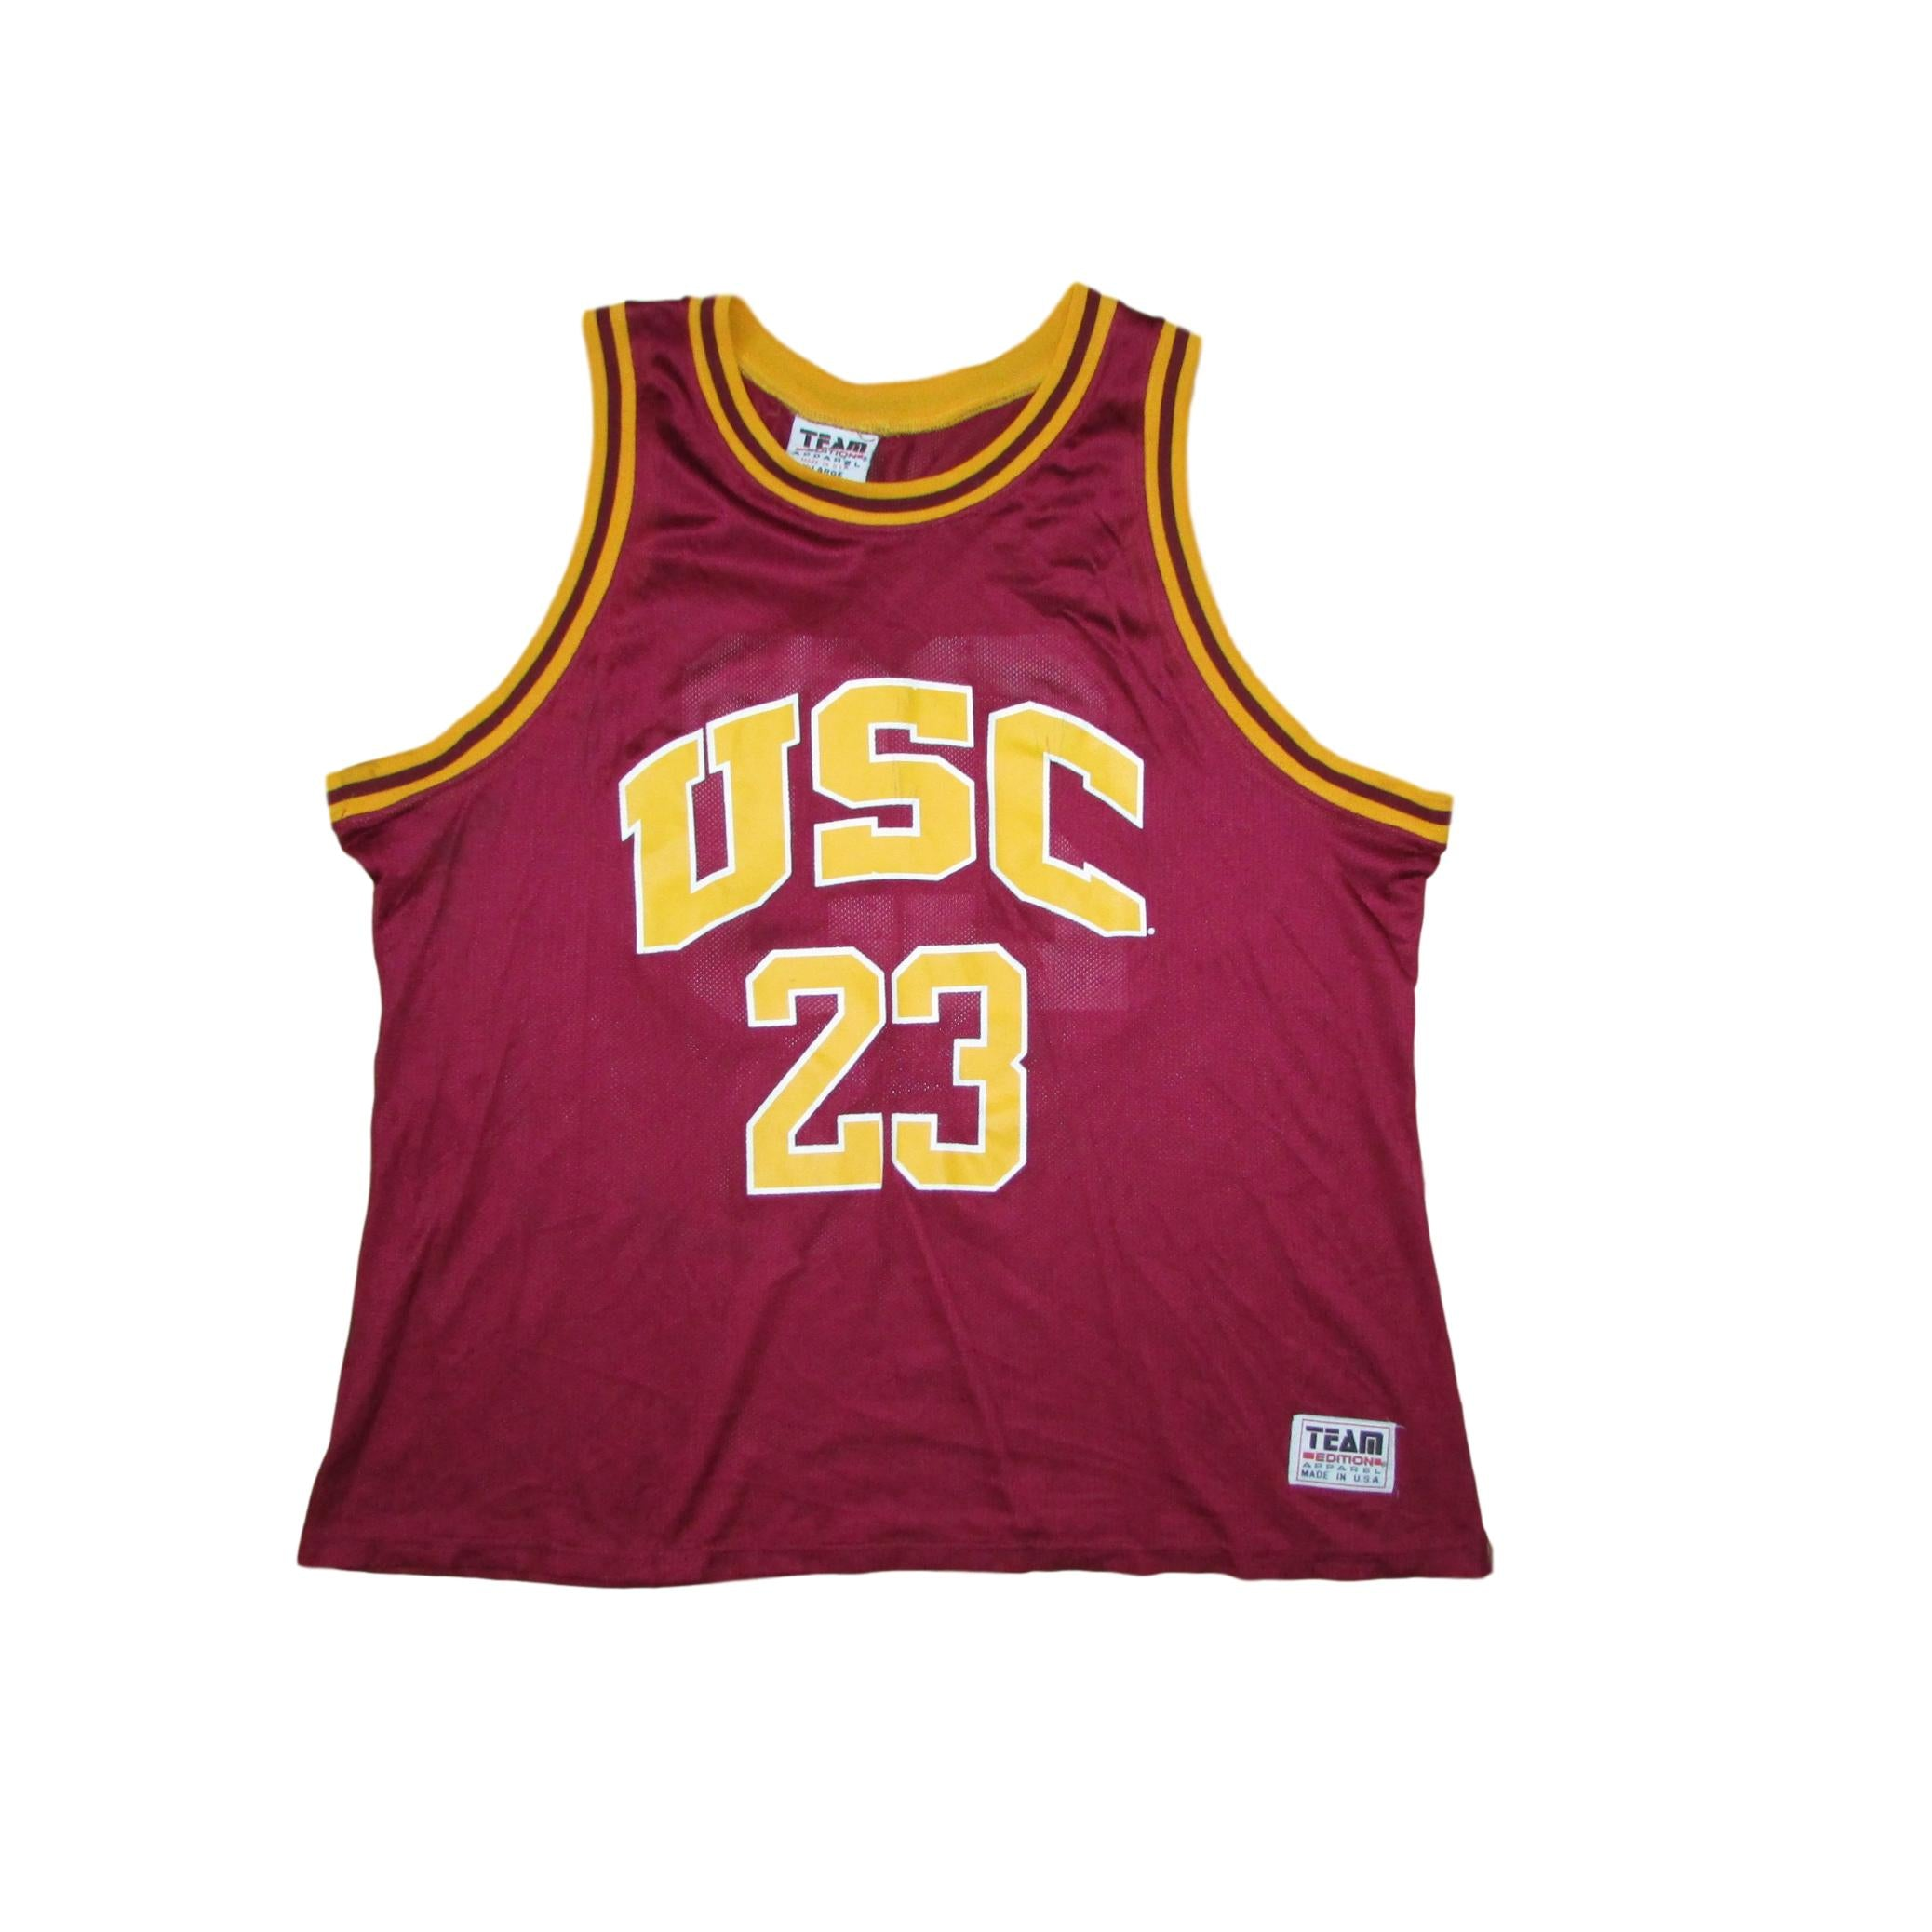 timeless design e44c5 e5601 USC Trojans Vintage Basketball Jersey #23 Team Edition Sz XL